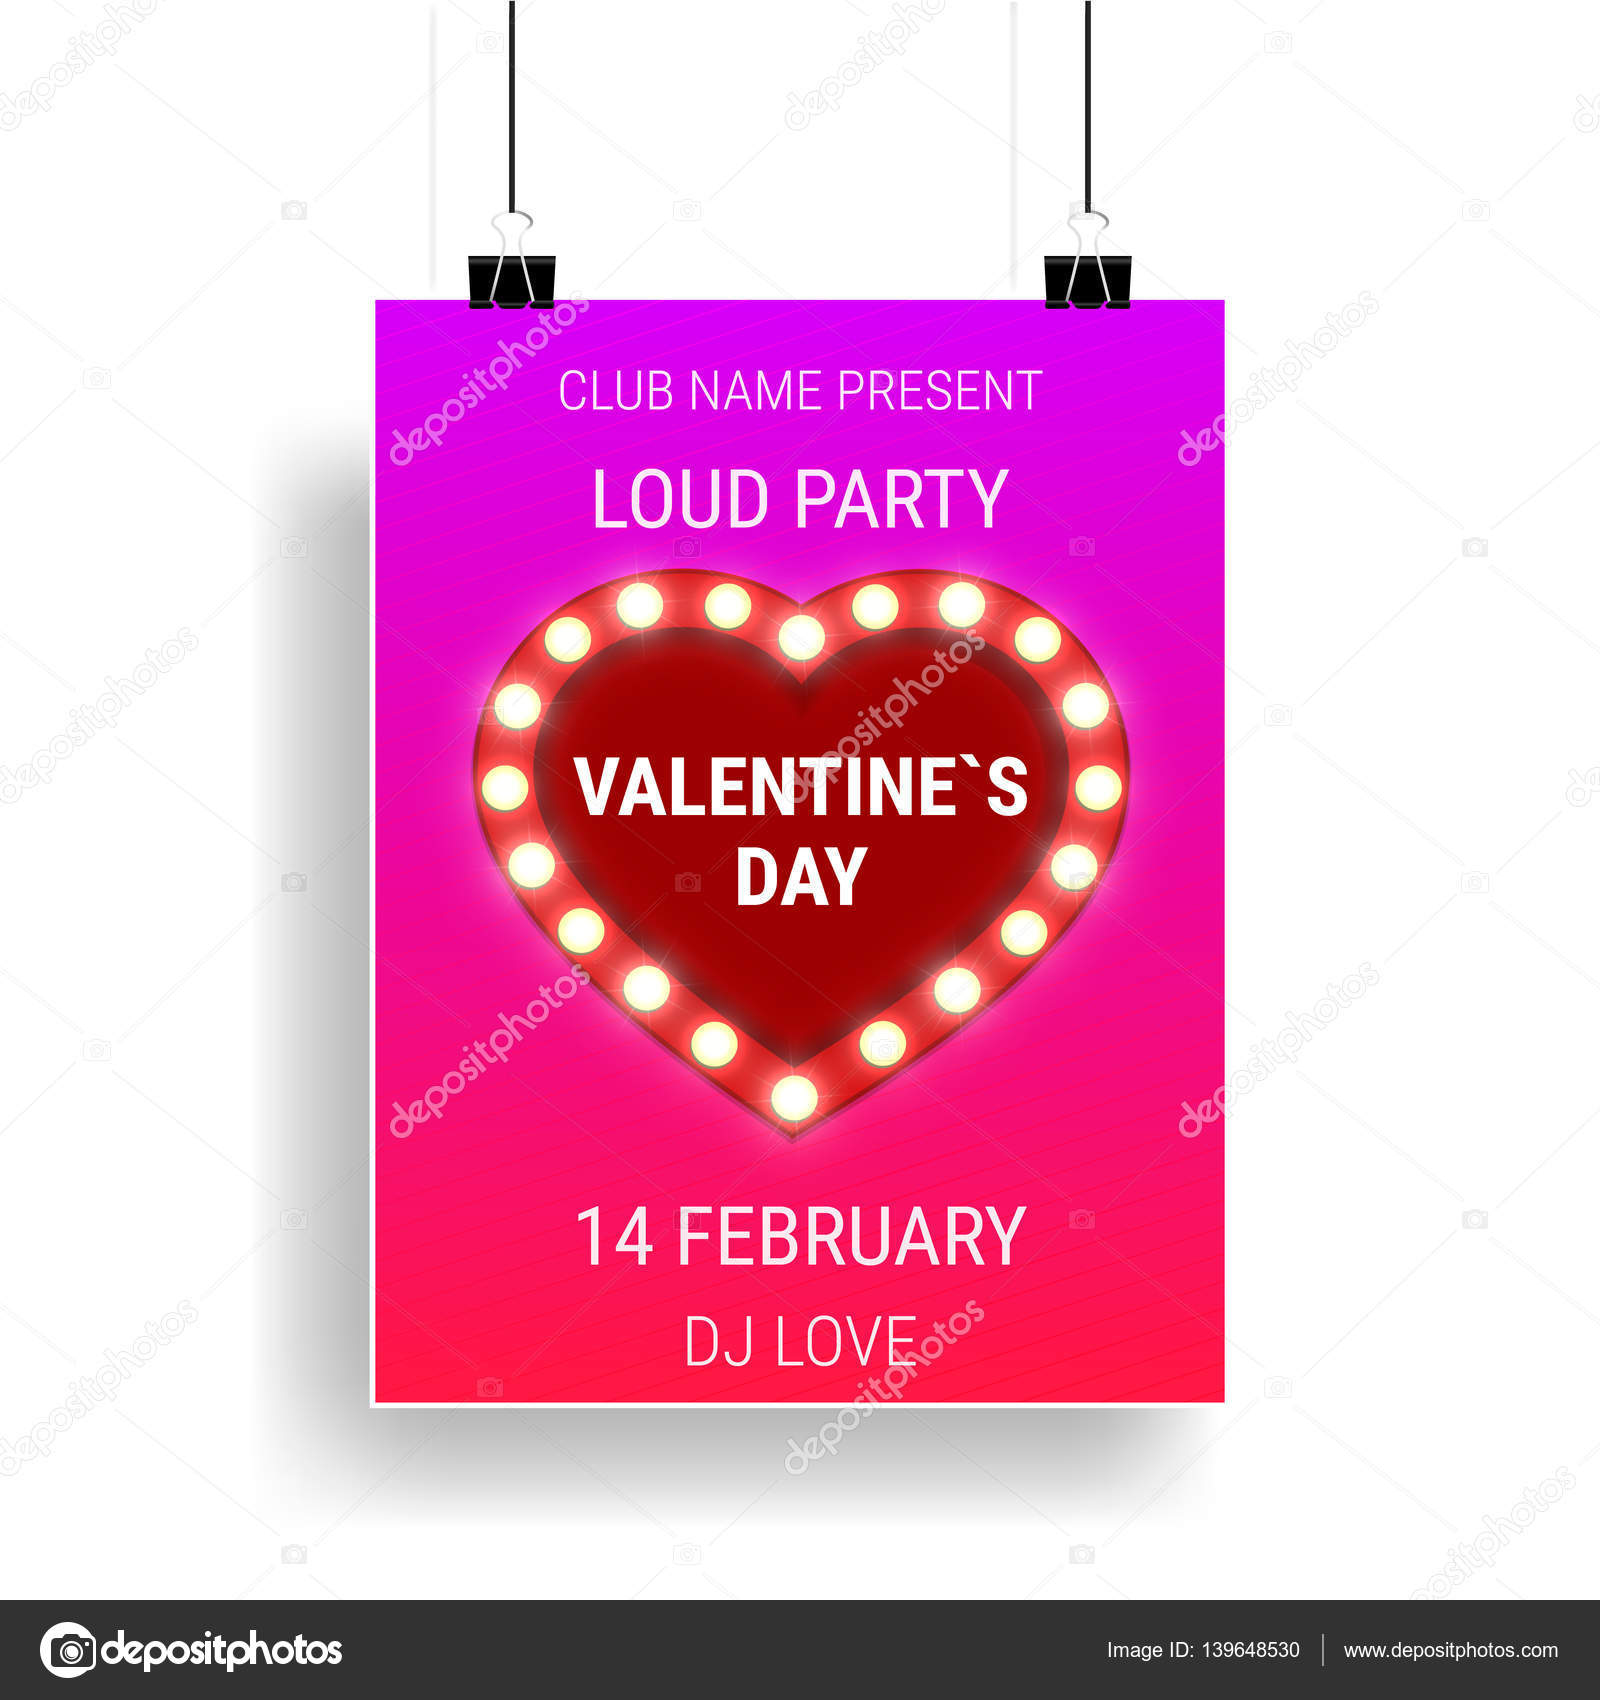 Valentines Day Party Poster Template With Shiny Heart And Lightbulbs